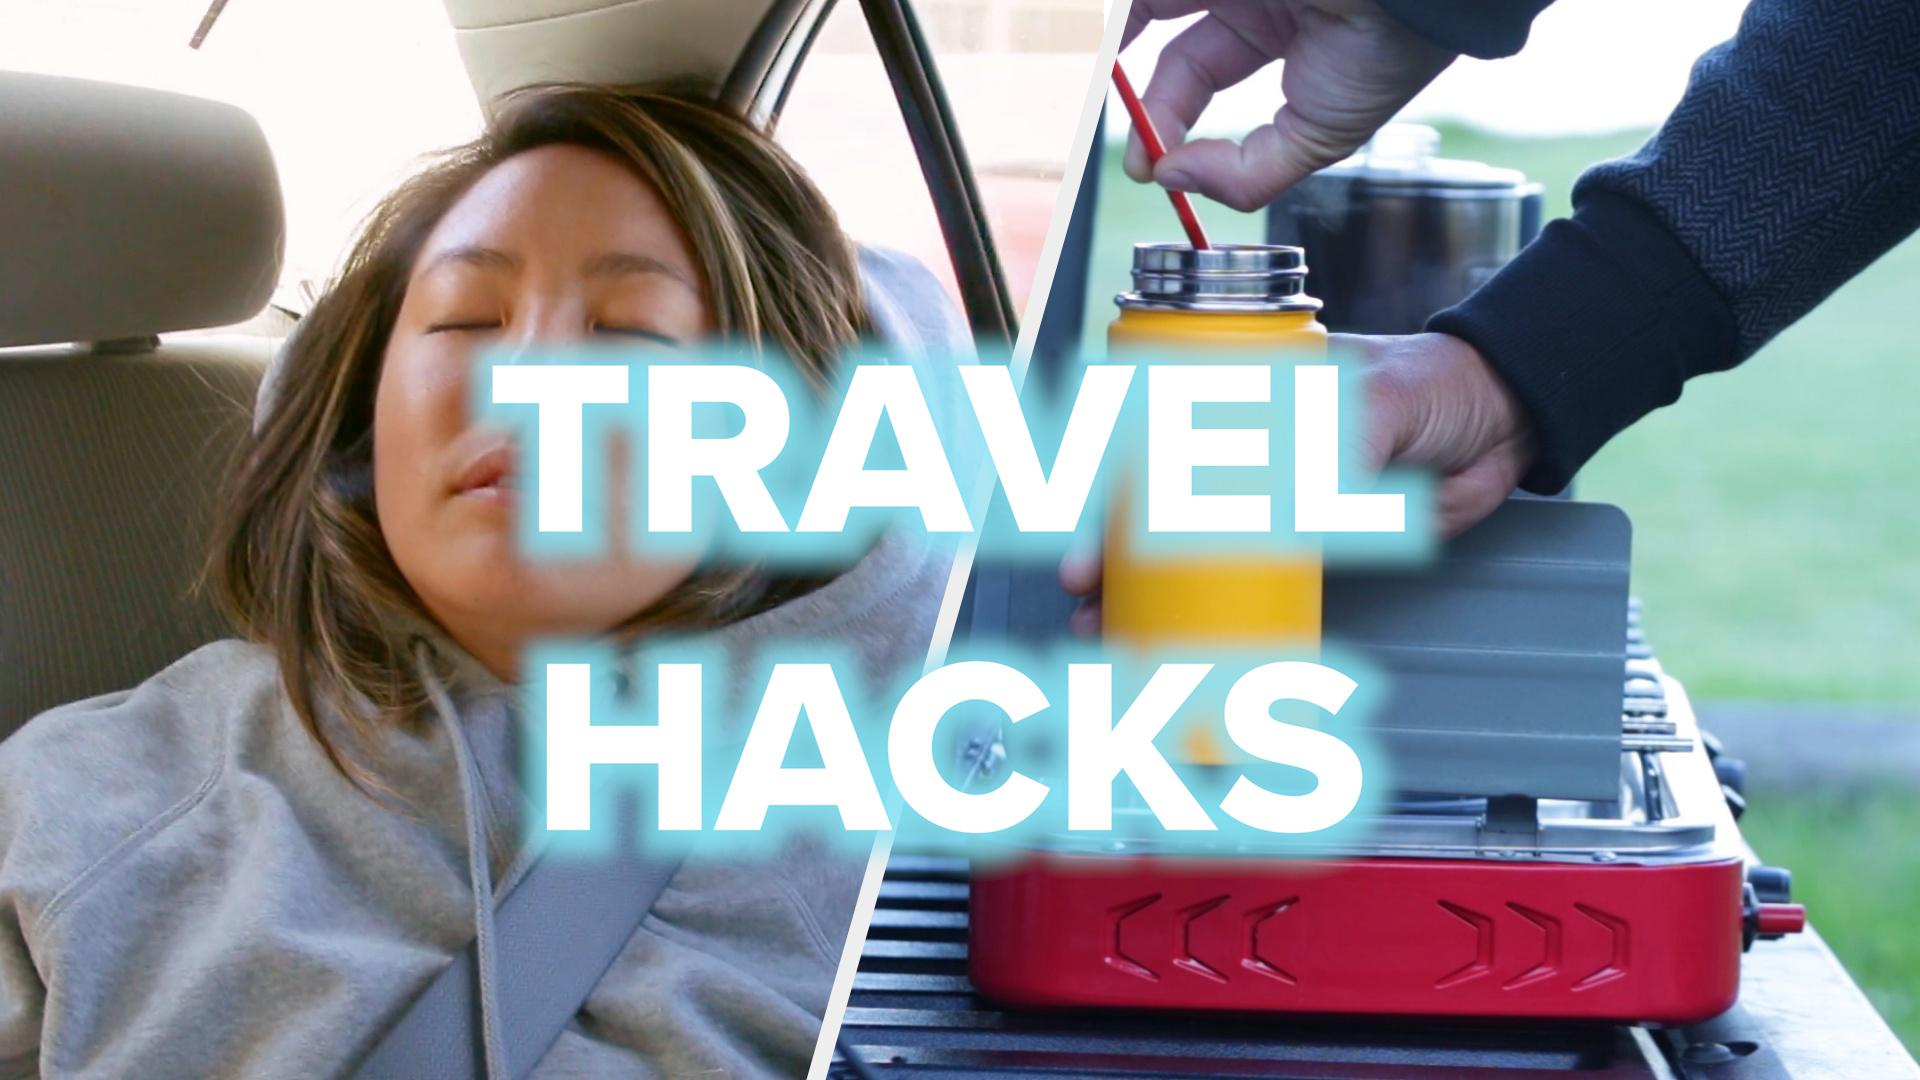 Nifty - Super Useful Travel Hacks For Your Next Trip